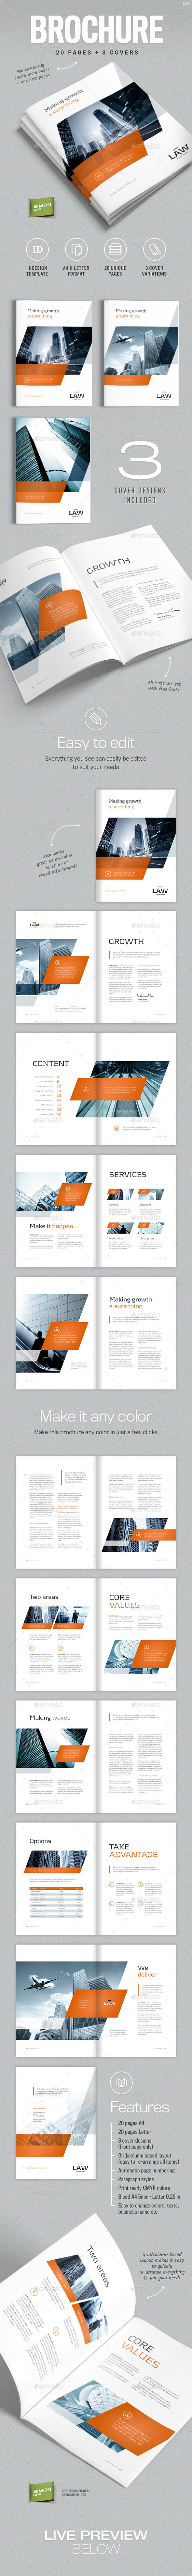 Brochure Template For Indesign A4 And Letter By Simon Cpx